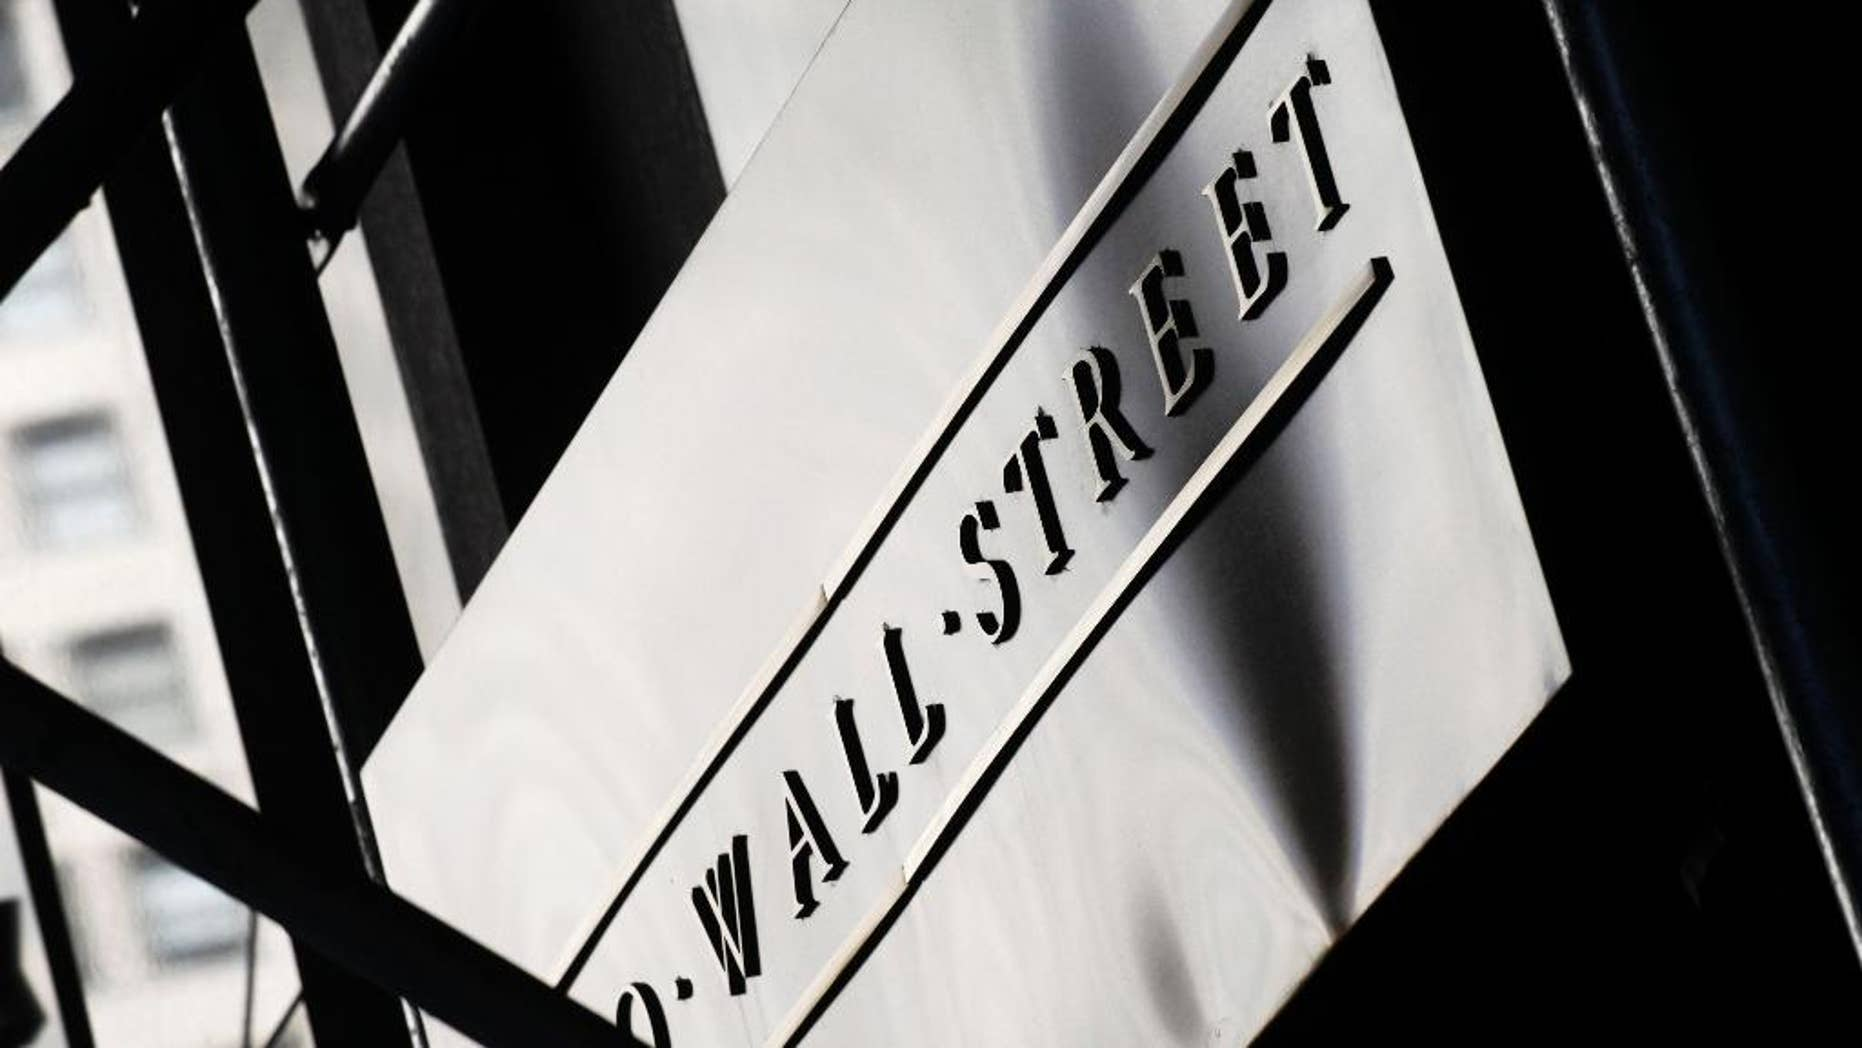 FILE - This July 15, 2013, file photo, shows a sign for Wall Street outside the New York Stock Exchange, in New York. Global stocks were mostly lower Tuesday, Sept. 23, 2014, following Wall Street's tumble but China rebounded after unexpectedly strong manufacturing eased fears of an economic slowdown. (AP Photo/Mark Lennihan, File)